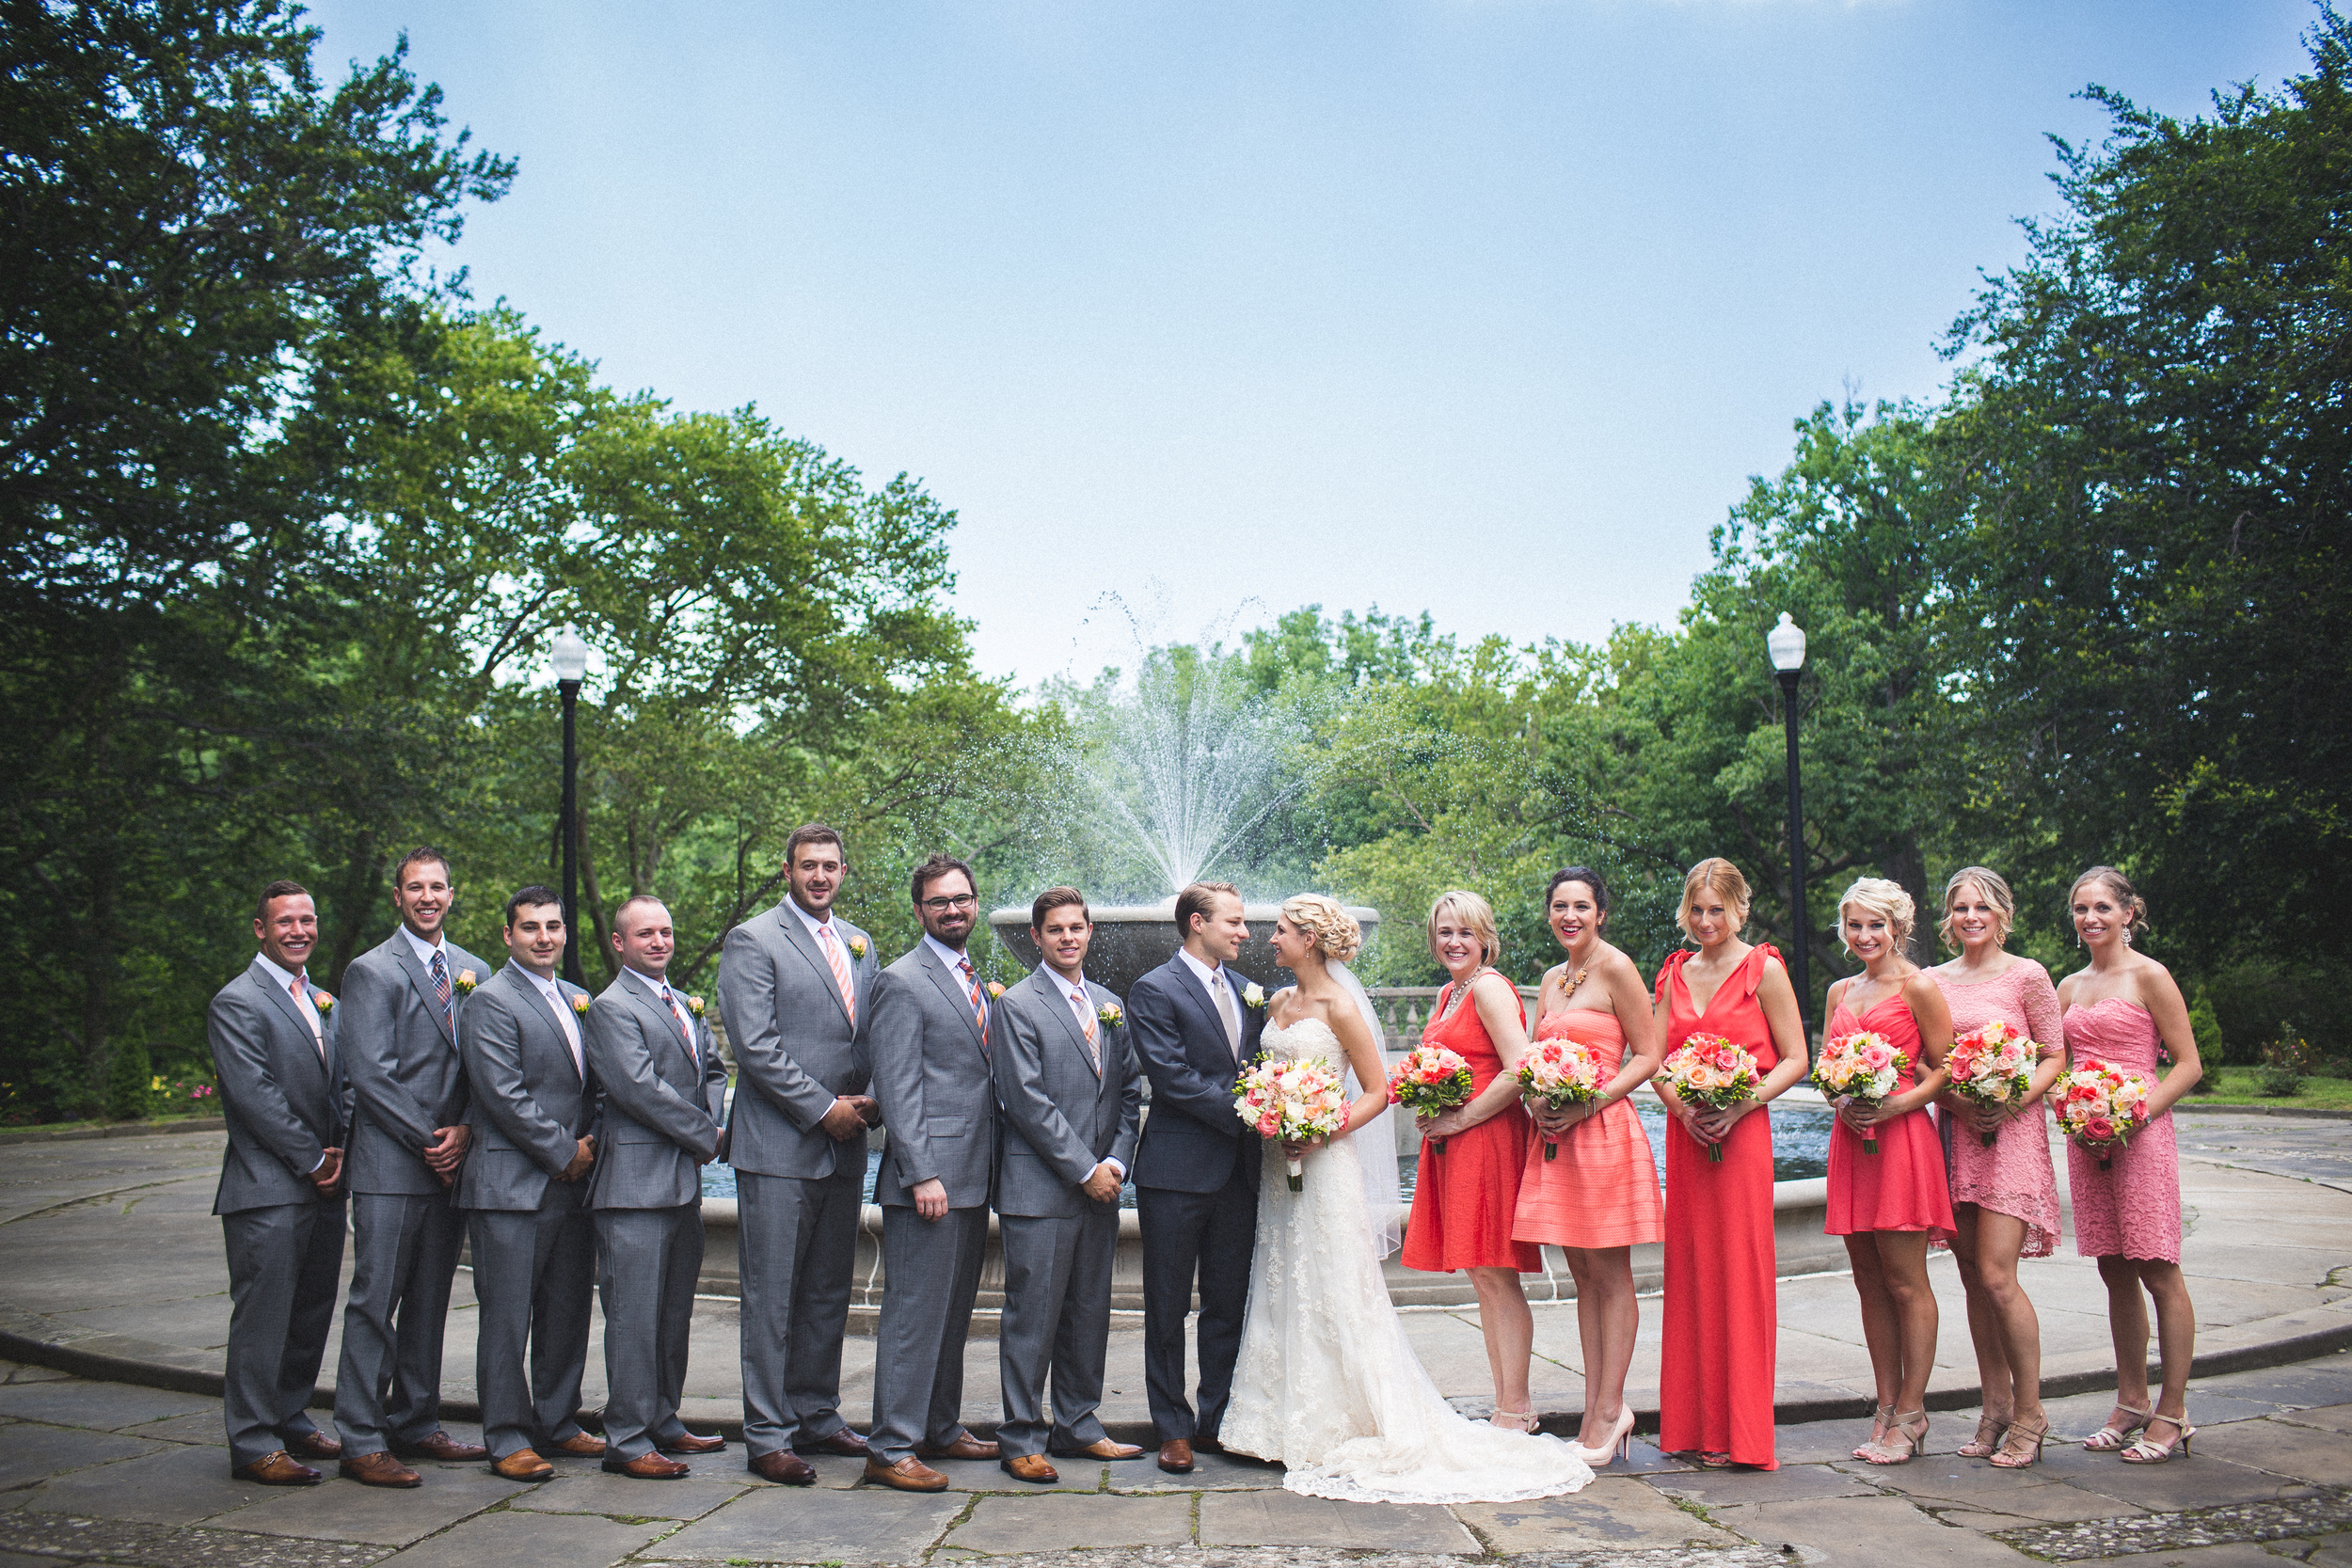 Cleveland wedding photographer | Wedding at w78th street smart space